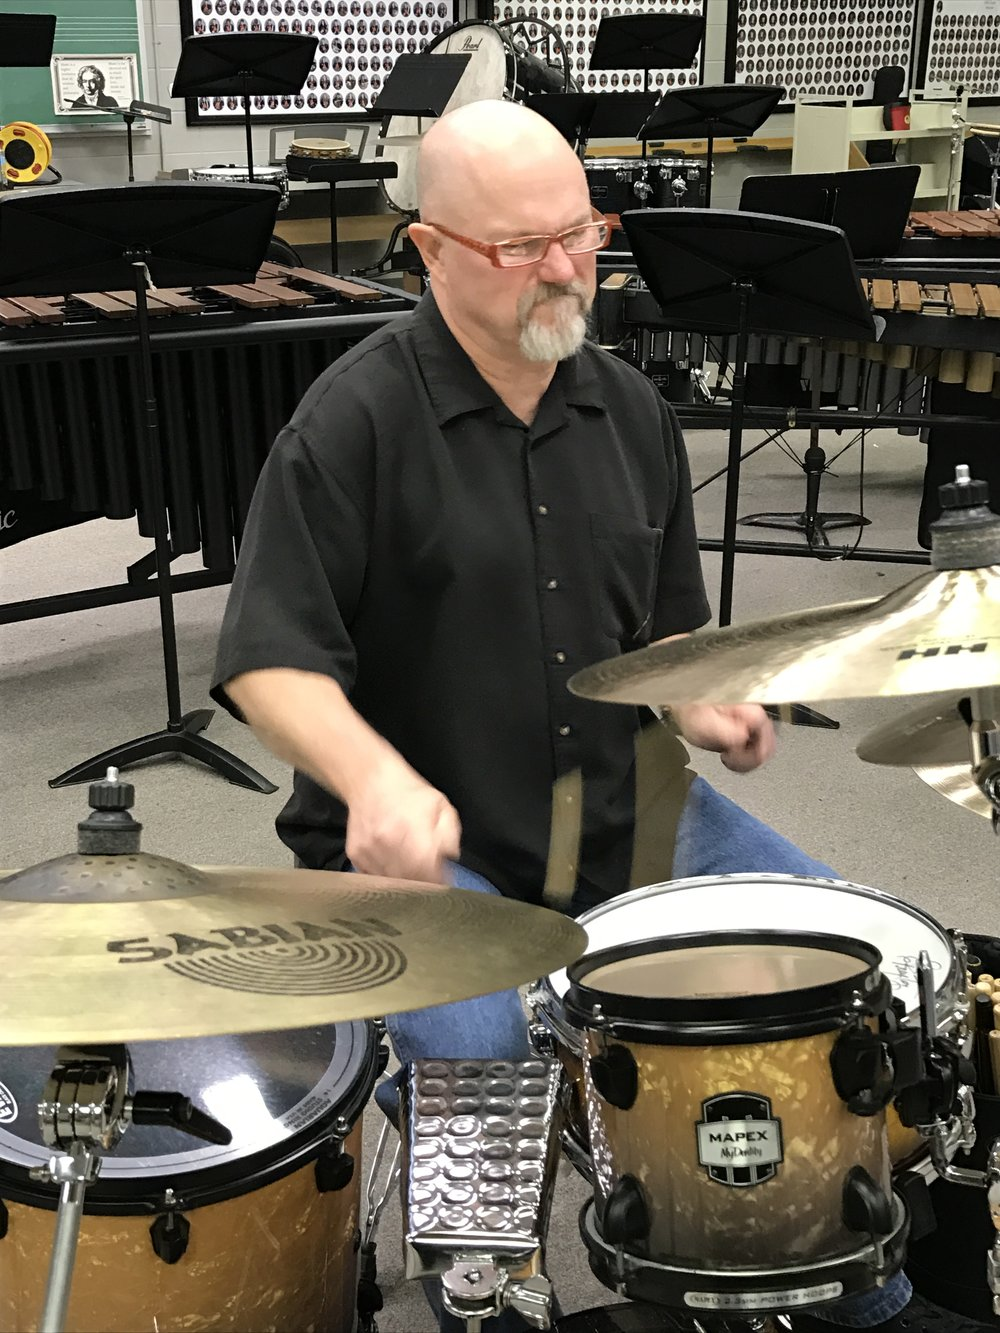 Warming up at the North Alabama Percussion Festival, 2017